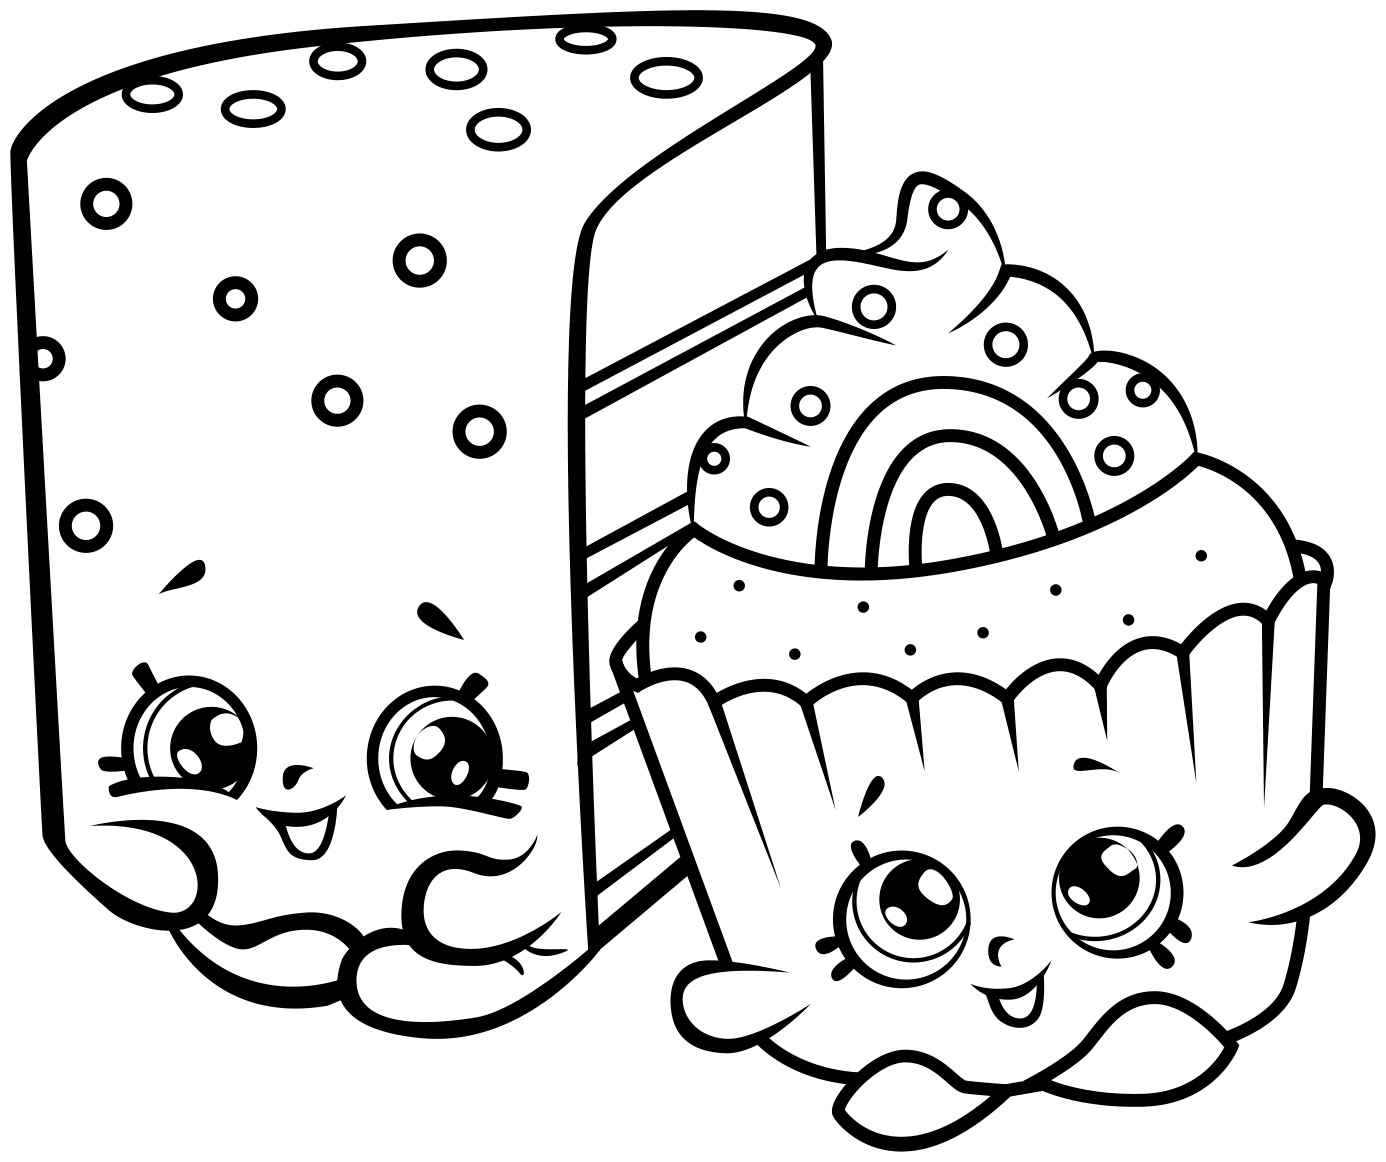 Shopkins Printable Coloring Pages - Printable Coloring Pages for Shopkins Free Shopkins Coloring Pages Collection